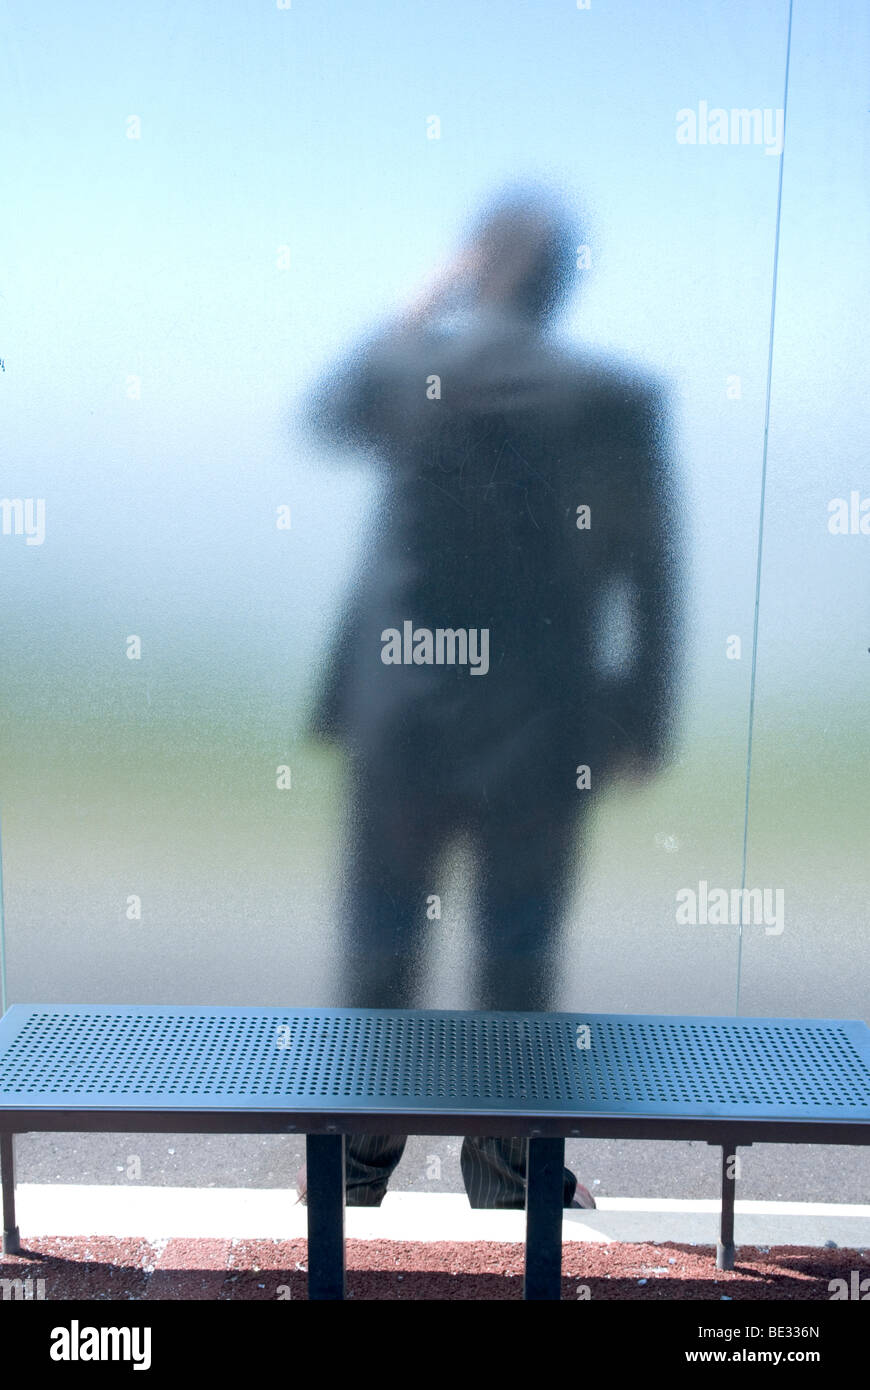 a man in a suit, with his back to us, stands behind frosted glass at a bus stop - Stock Image